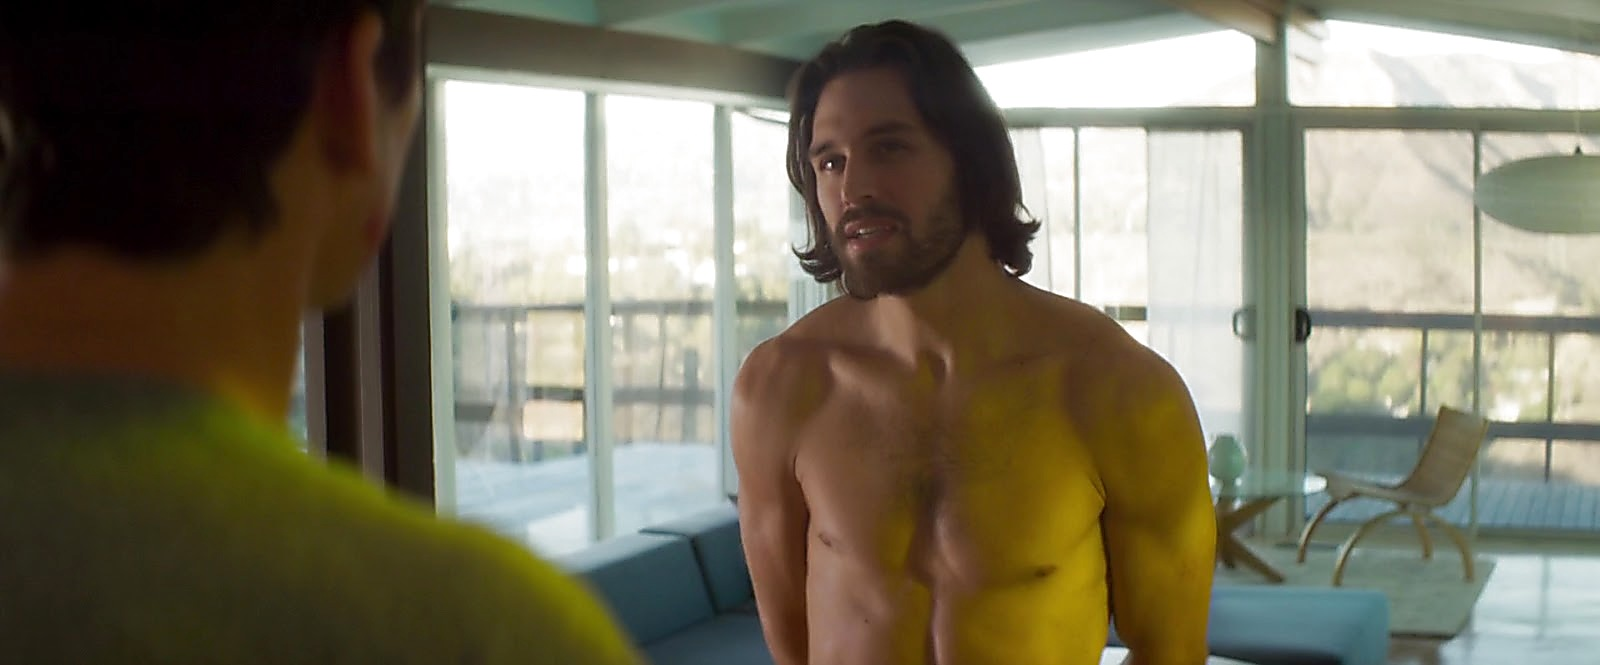 Ryan Guzman sexy shirtless scene July 22, 2019, 1pm